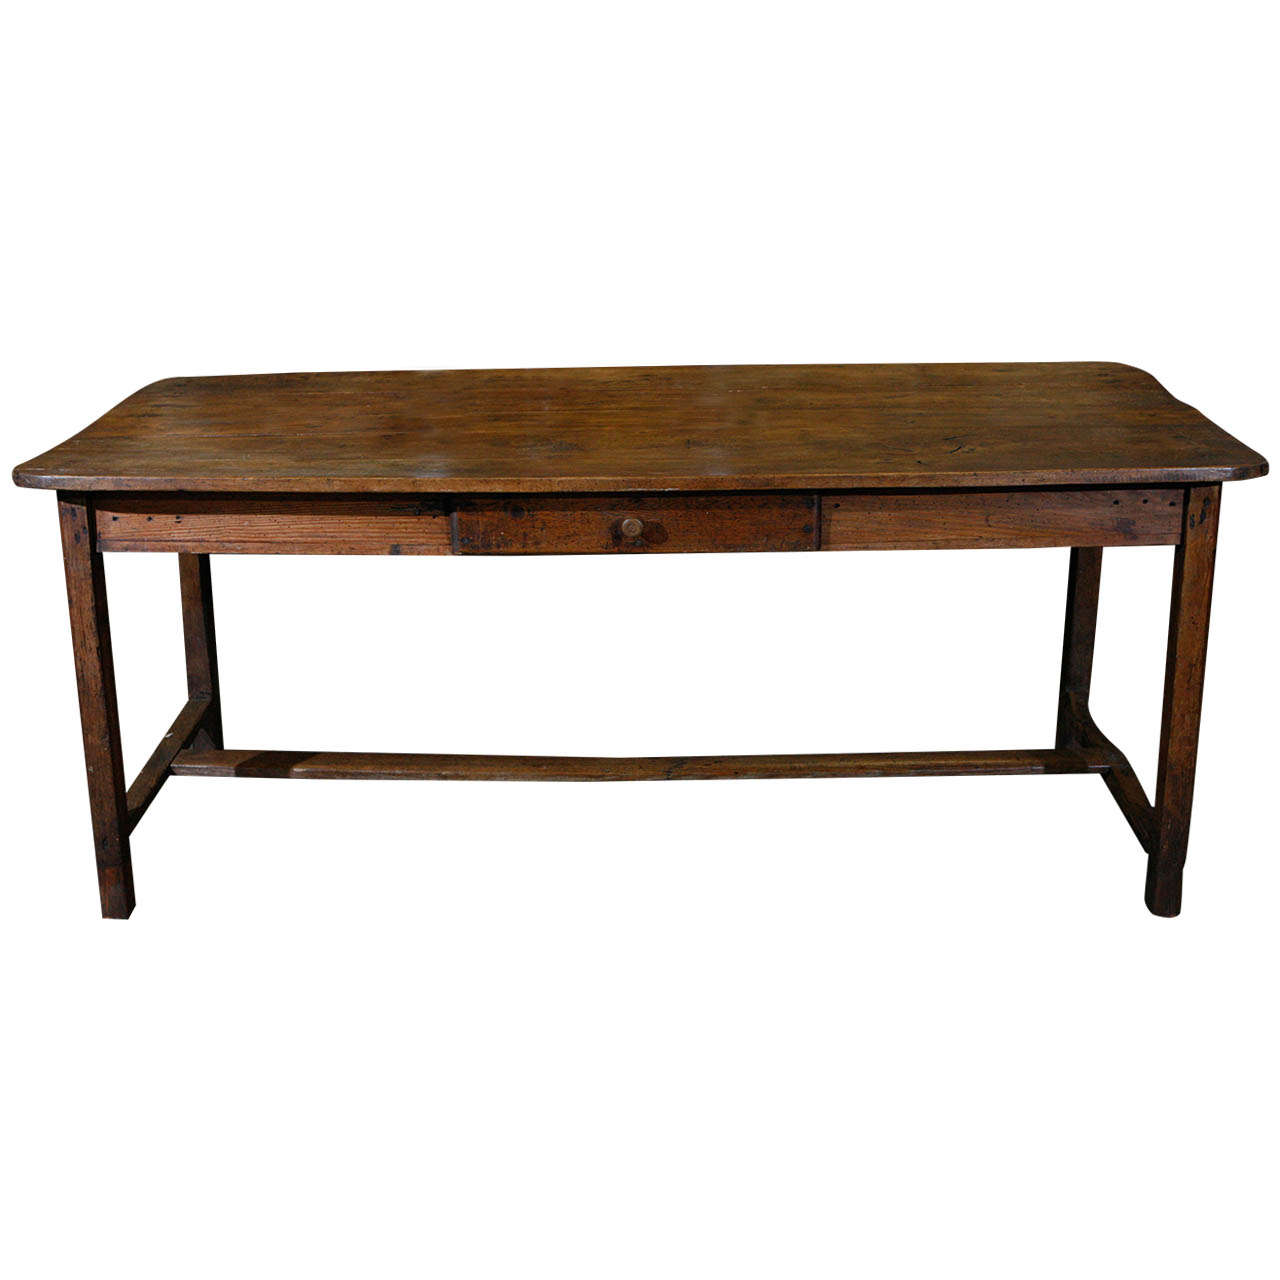 French country dining table desk with drawer at 1stdibs for French country dining table